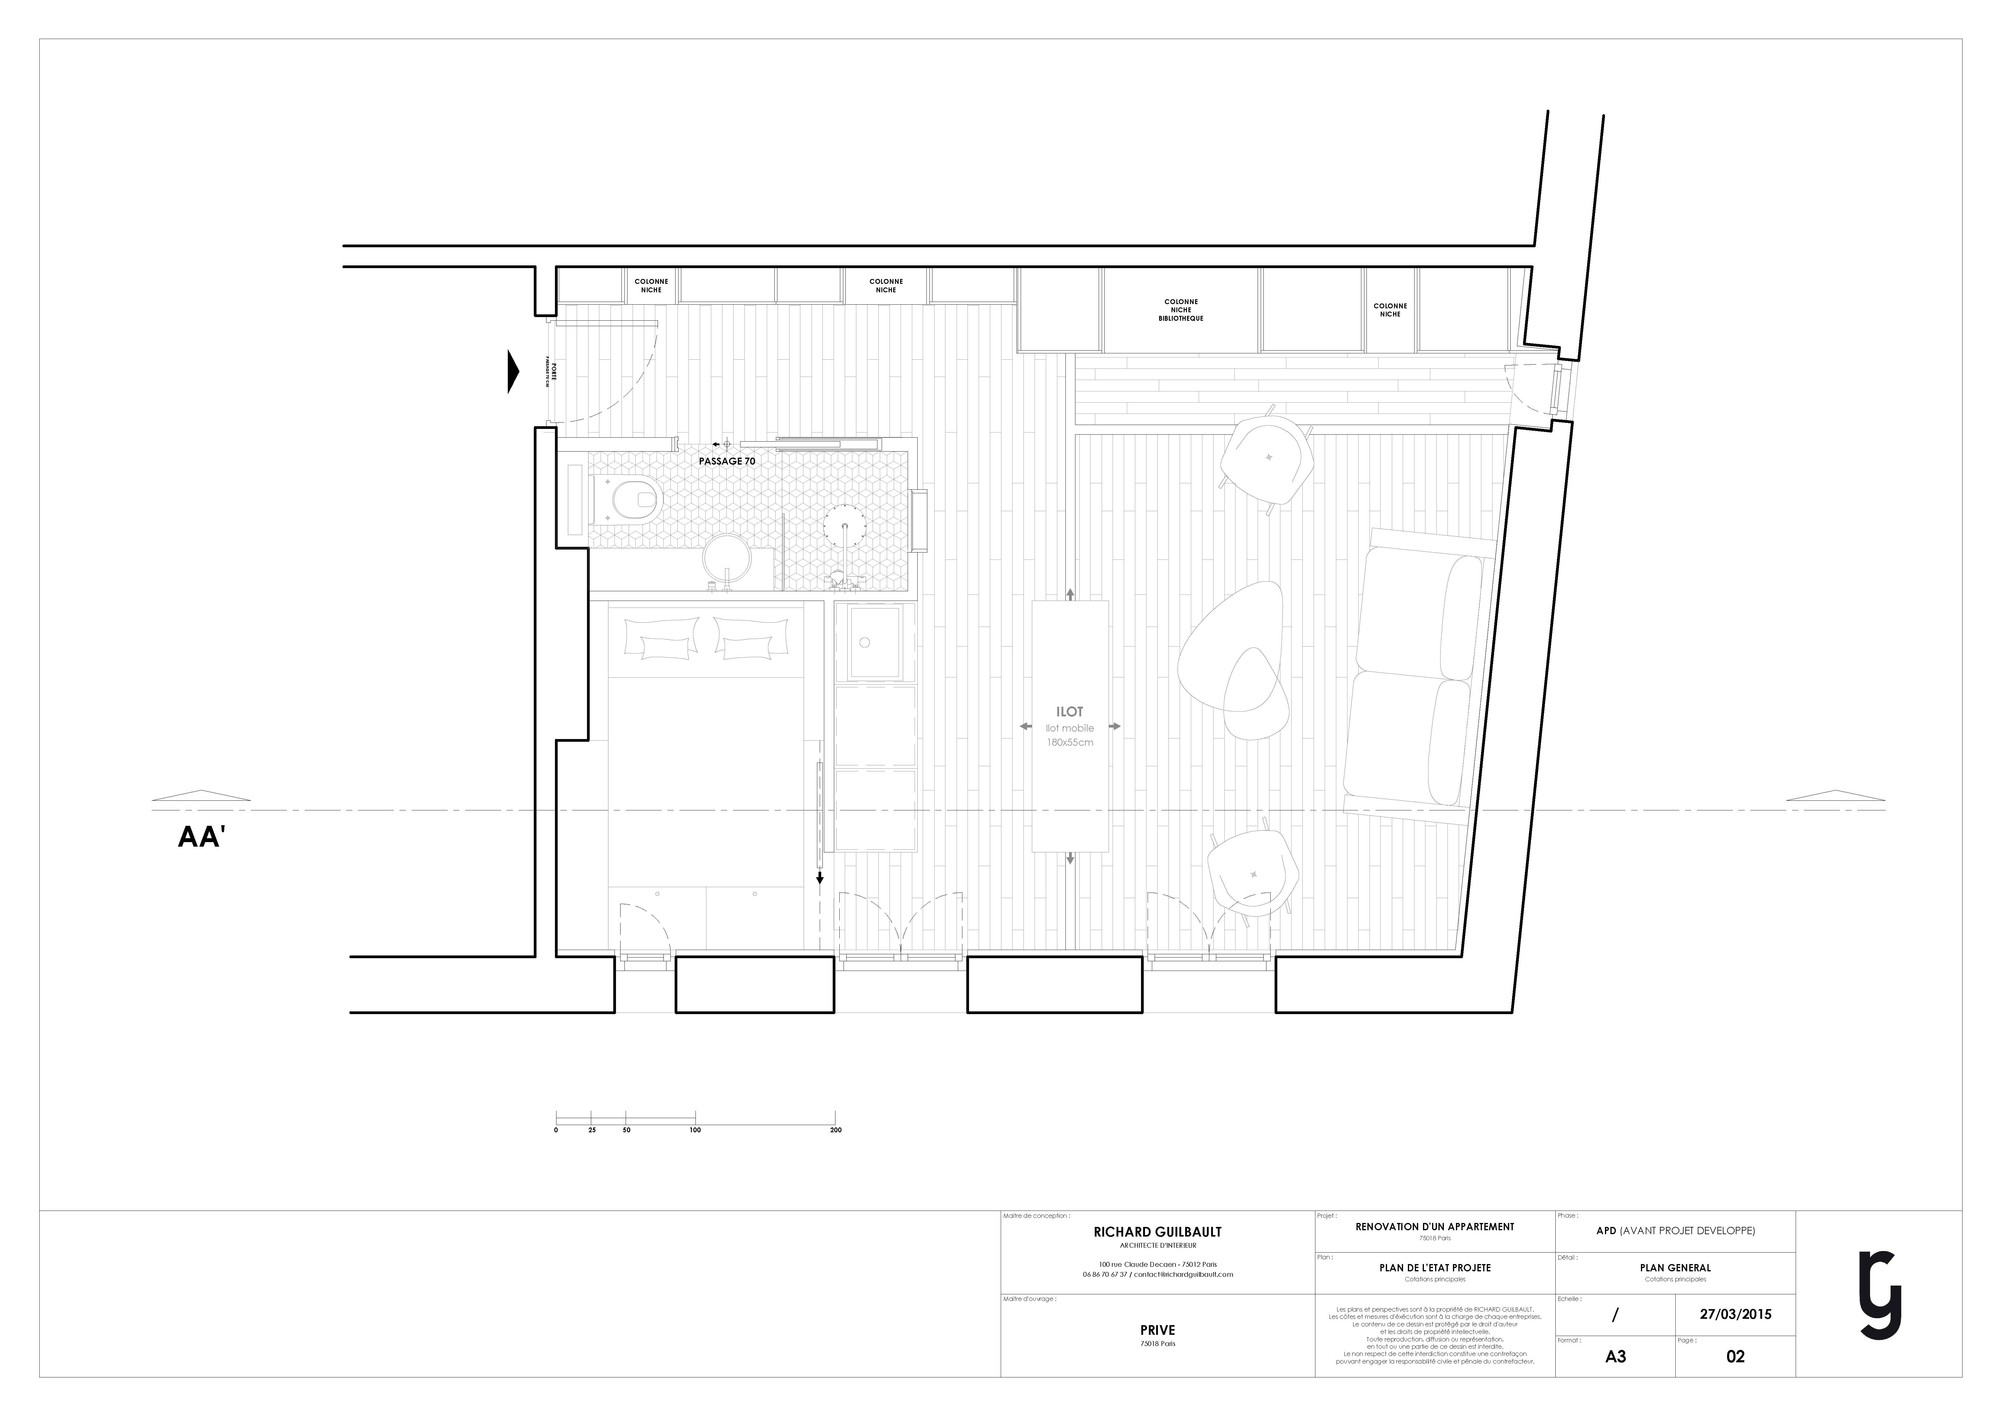 Flat Plan Gallery Of 30m2 Flat In Paris Richard Guilbault 15